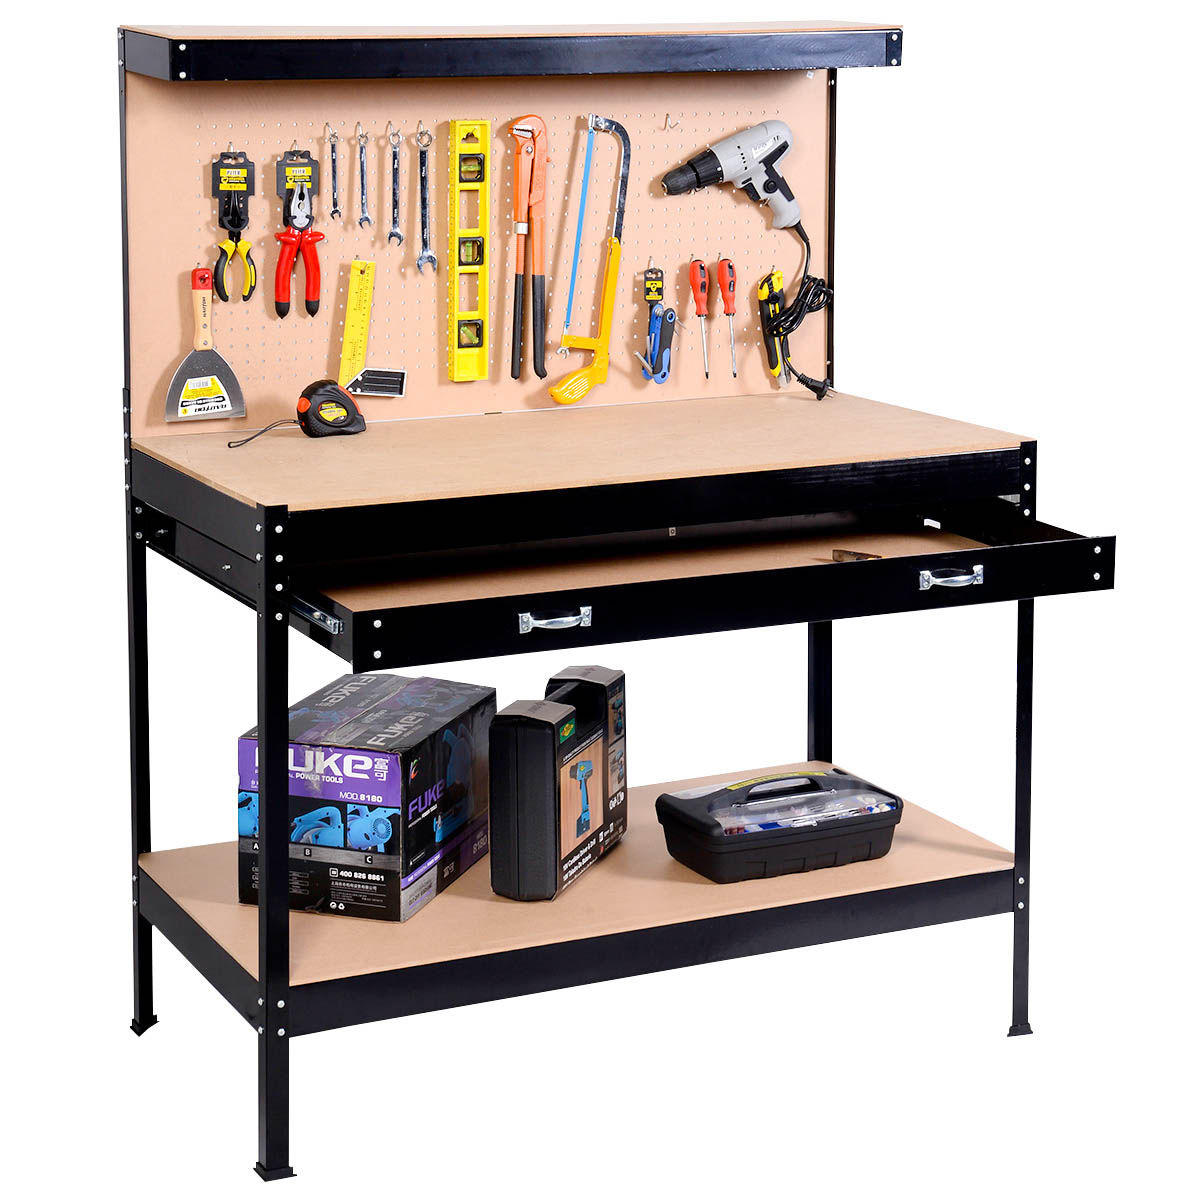 Costway Work Bench Tool Storage Steel Frame Tool Workshop Table W  Drawer and Peg Boar by Costway